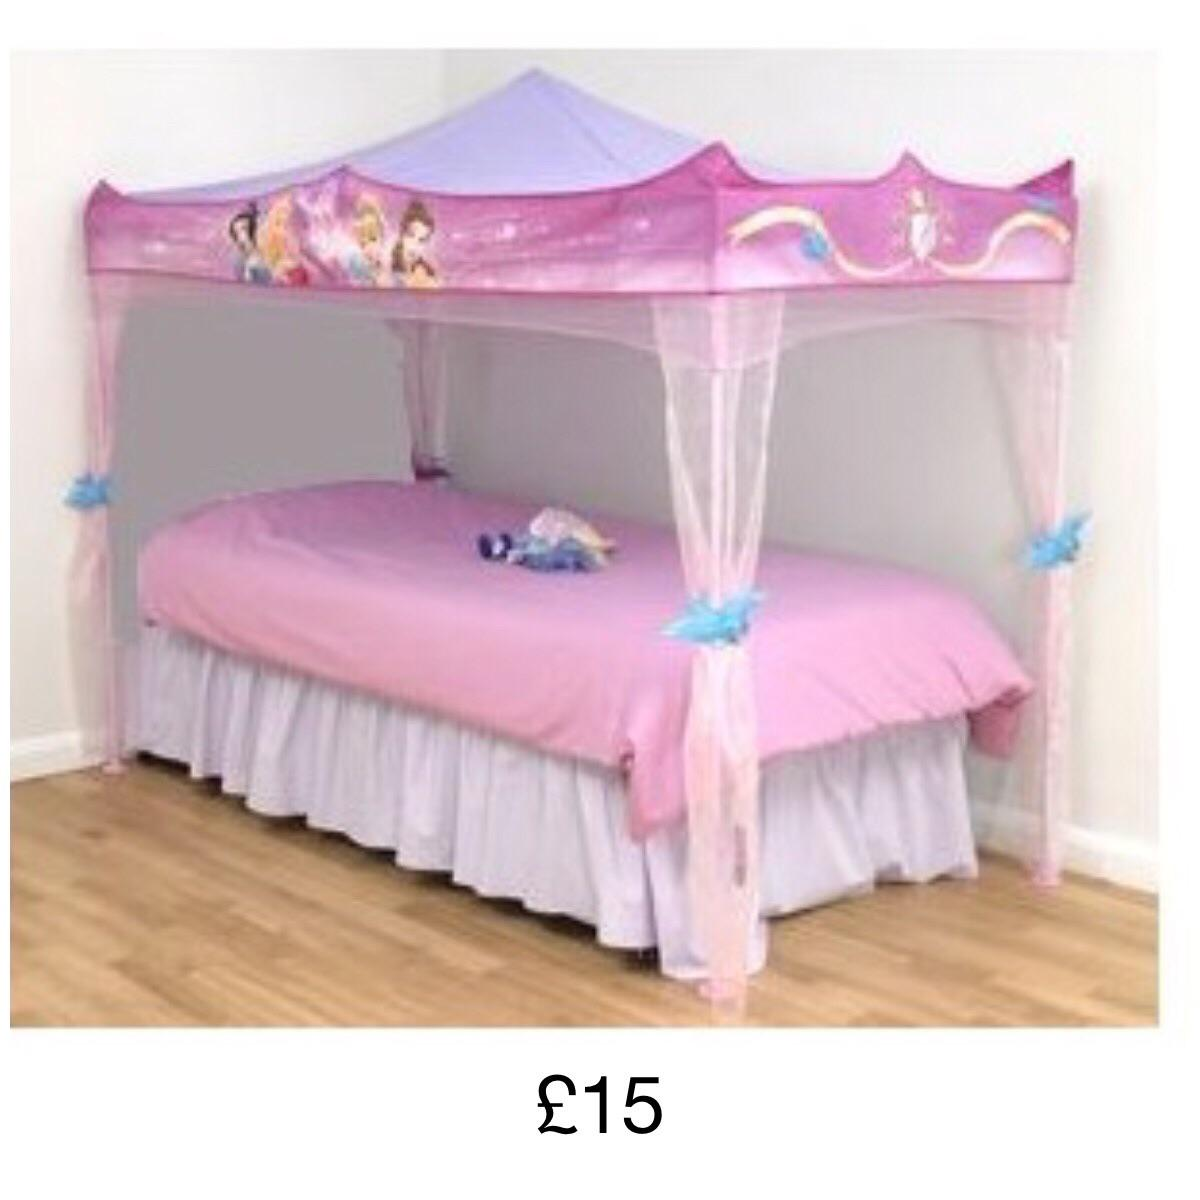 - Disney Princess Bed Canopy In NE25 Pit For £15.00 For Sale Shpock